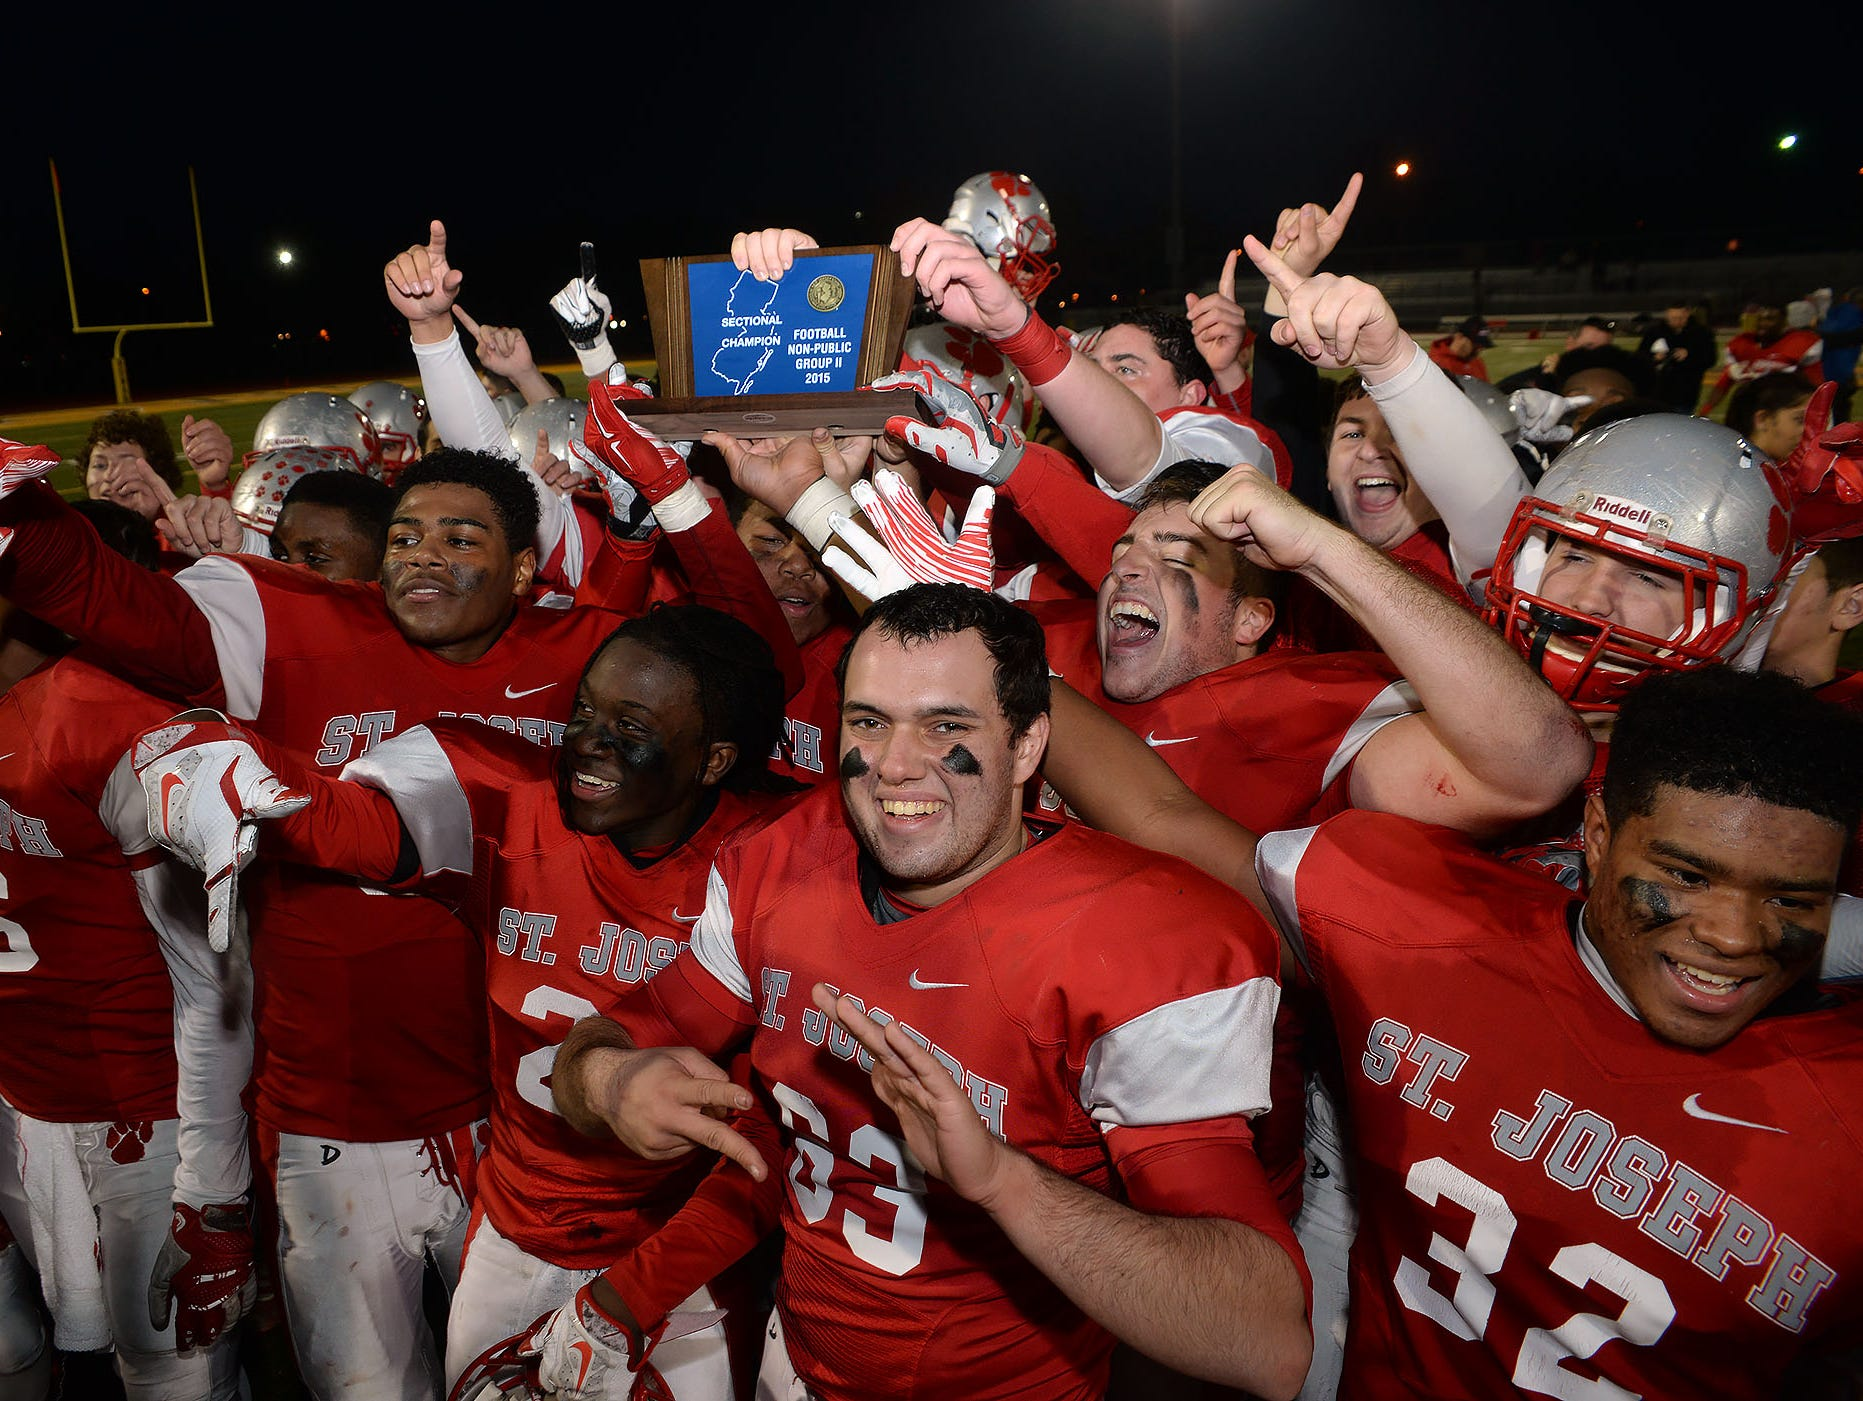 The St. Joe football Wildcats celebrate with the NJSIAA Non-Public Group 2 Championship trophy after their defeat of Hudson Catholic, Sunday, Dec. 6 at Rowan University in Glassboro.